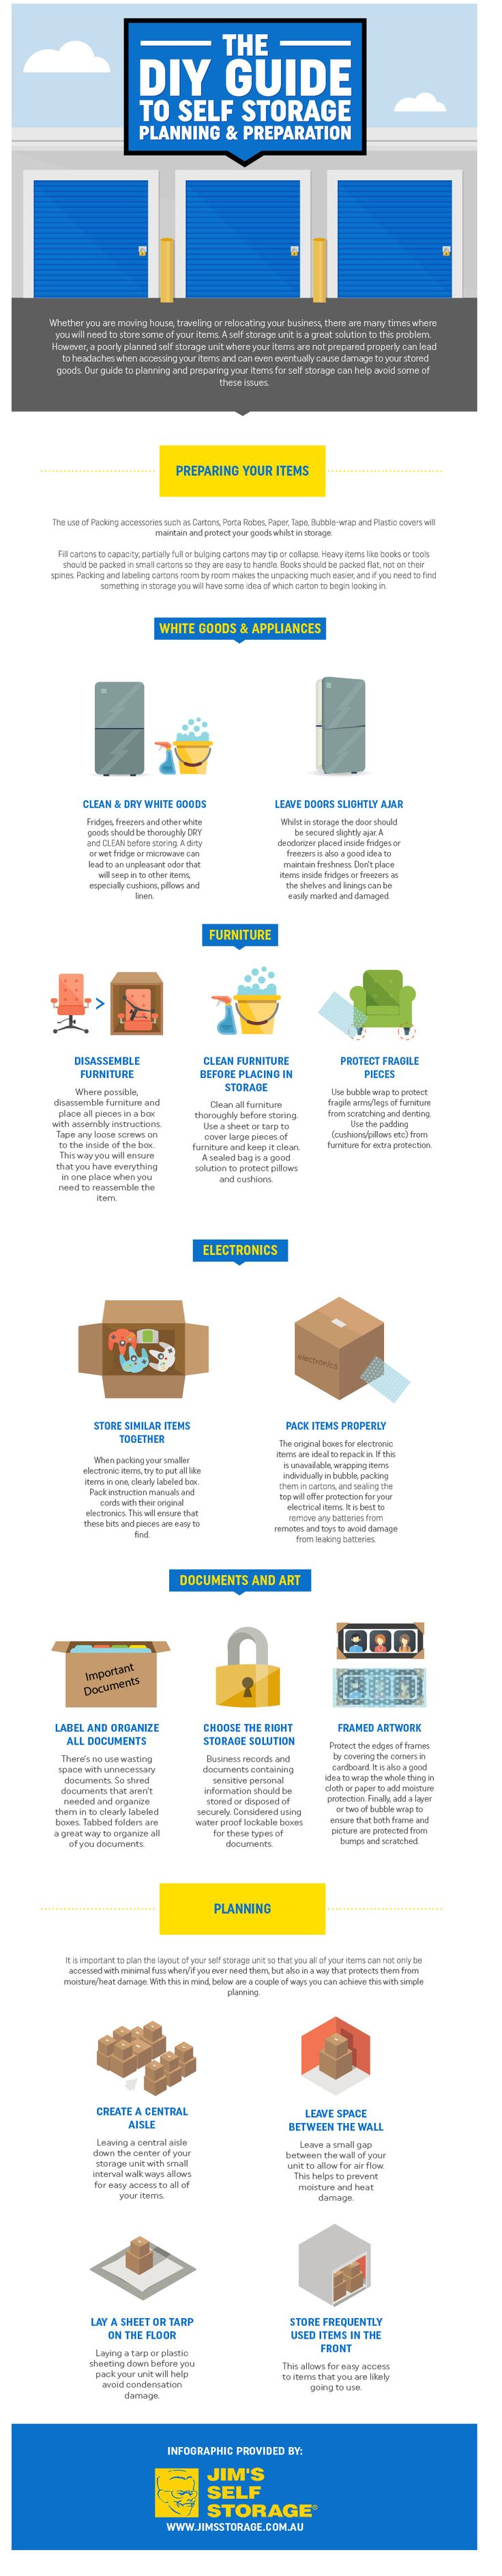 THE DIY GUIDE TO SELF STORAGE PLANNING & PREPARATION  Whether you are moving house, traveling or relocating your business, there are many times where you will need to store some of your items. A self storage unit is a great solution to this problem.  However, a poorly planned self storage unit where you items are not prepared properly can lead to headaches when accessing your items and can even eventually cause damage to your stored goods.